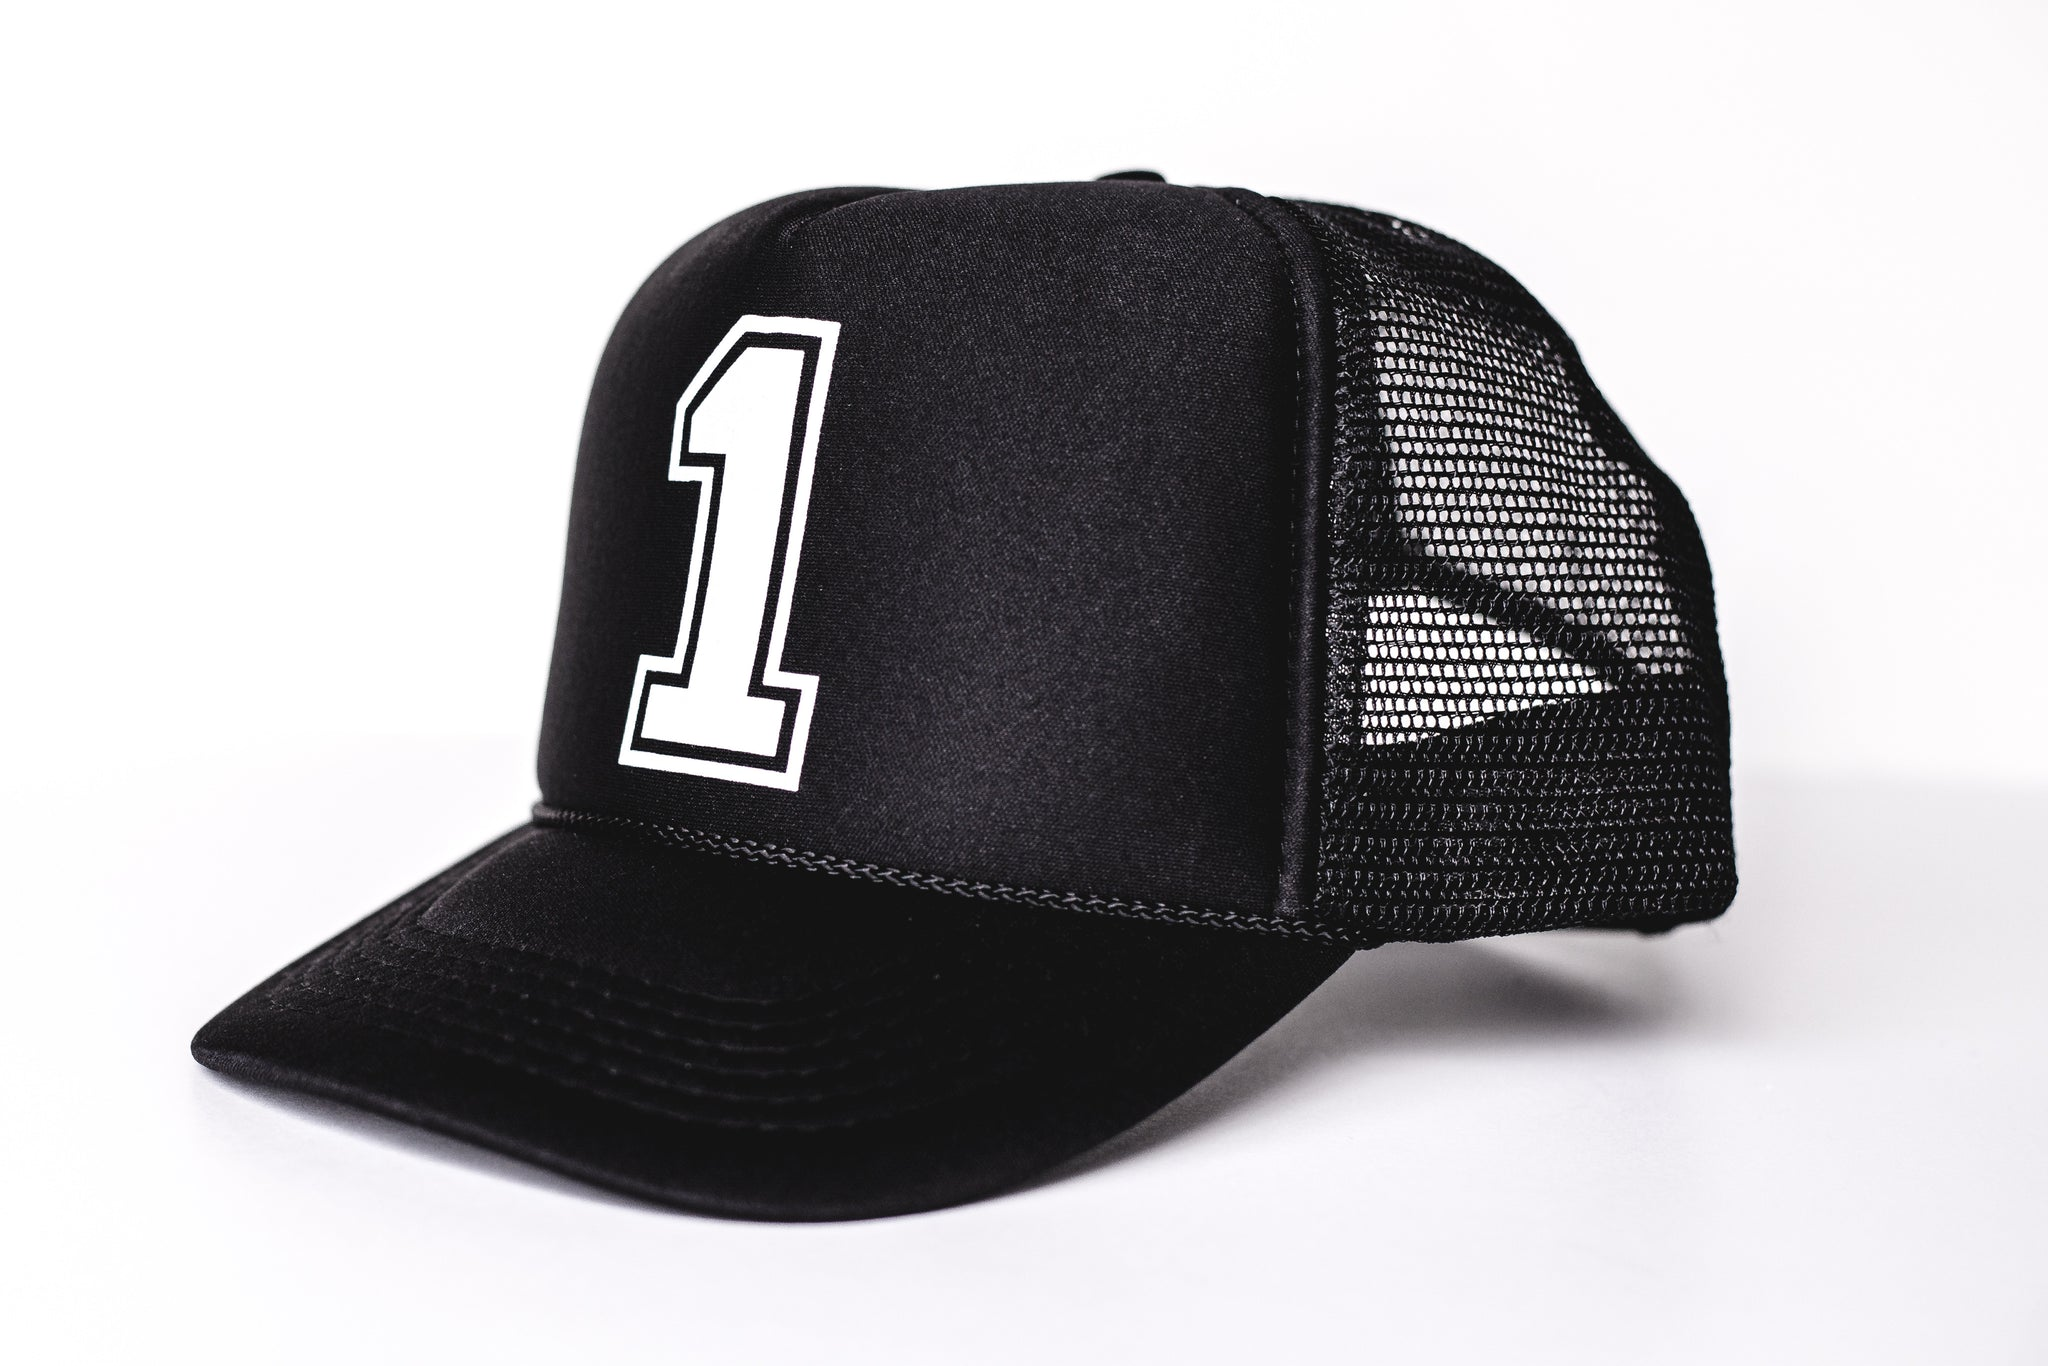 The One - Snapback Trucker Hat